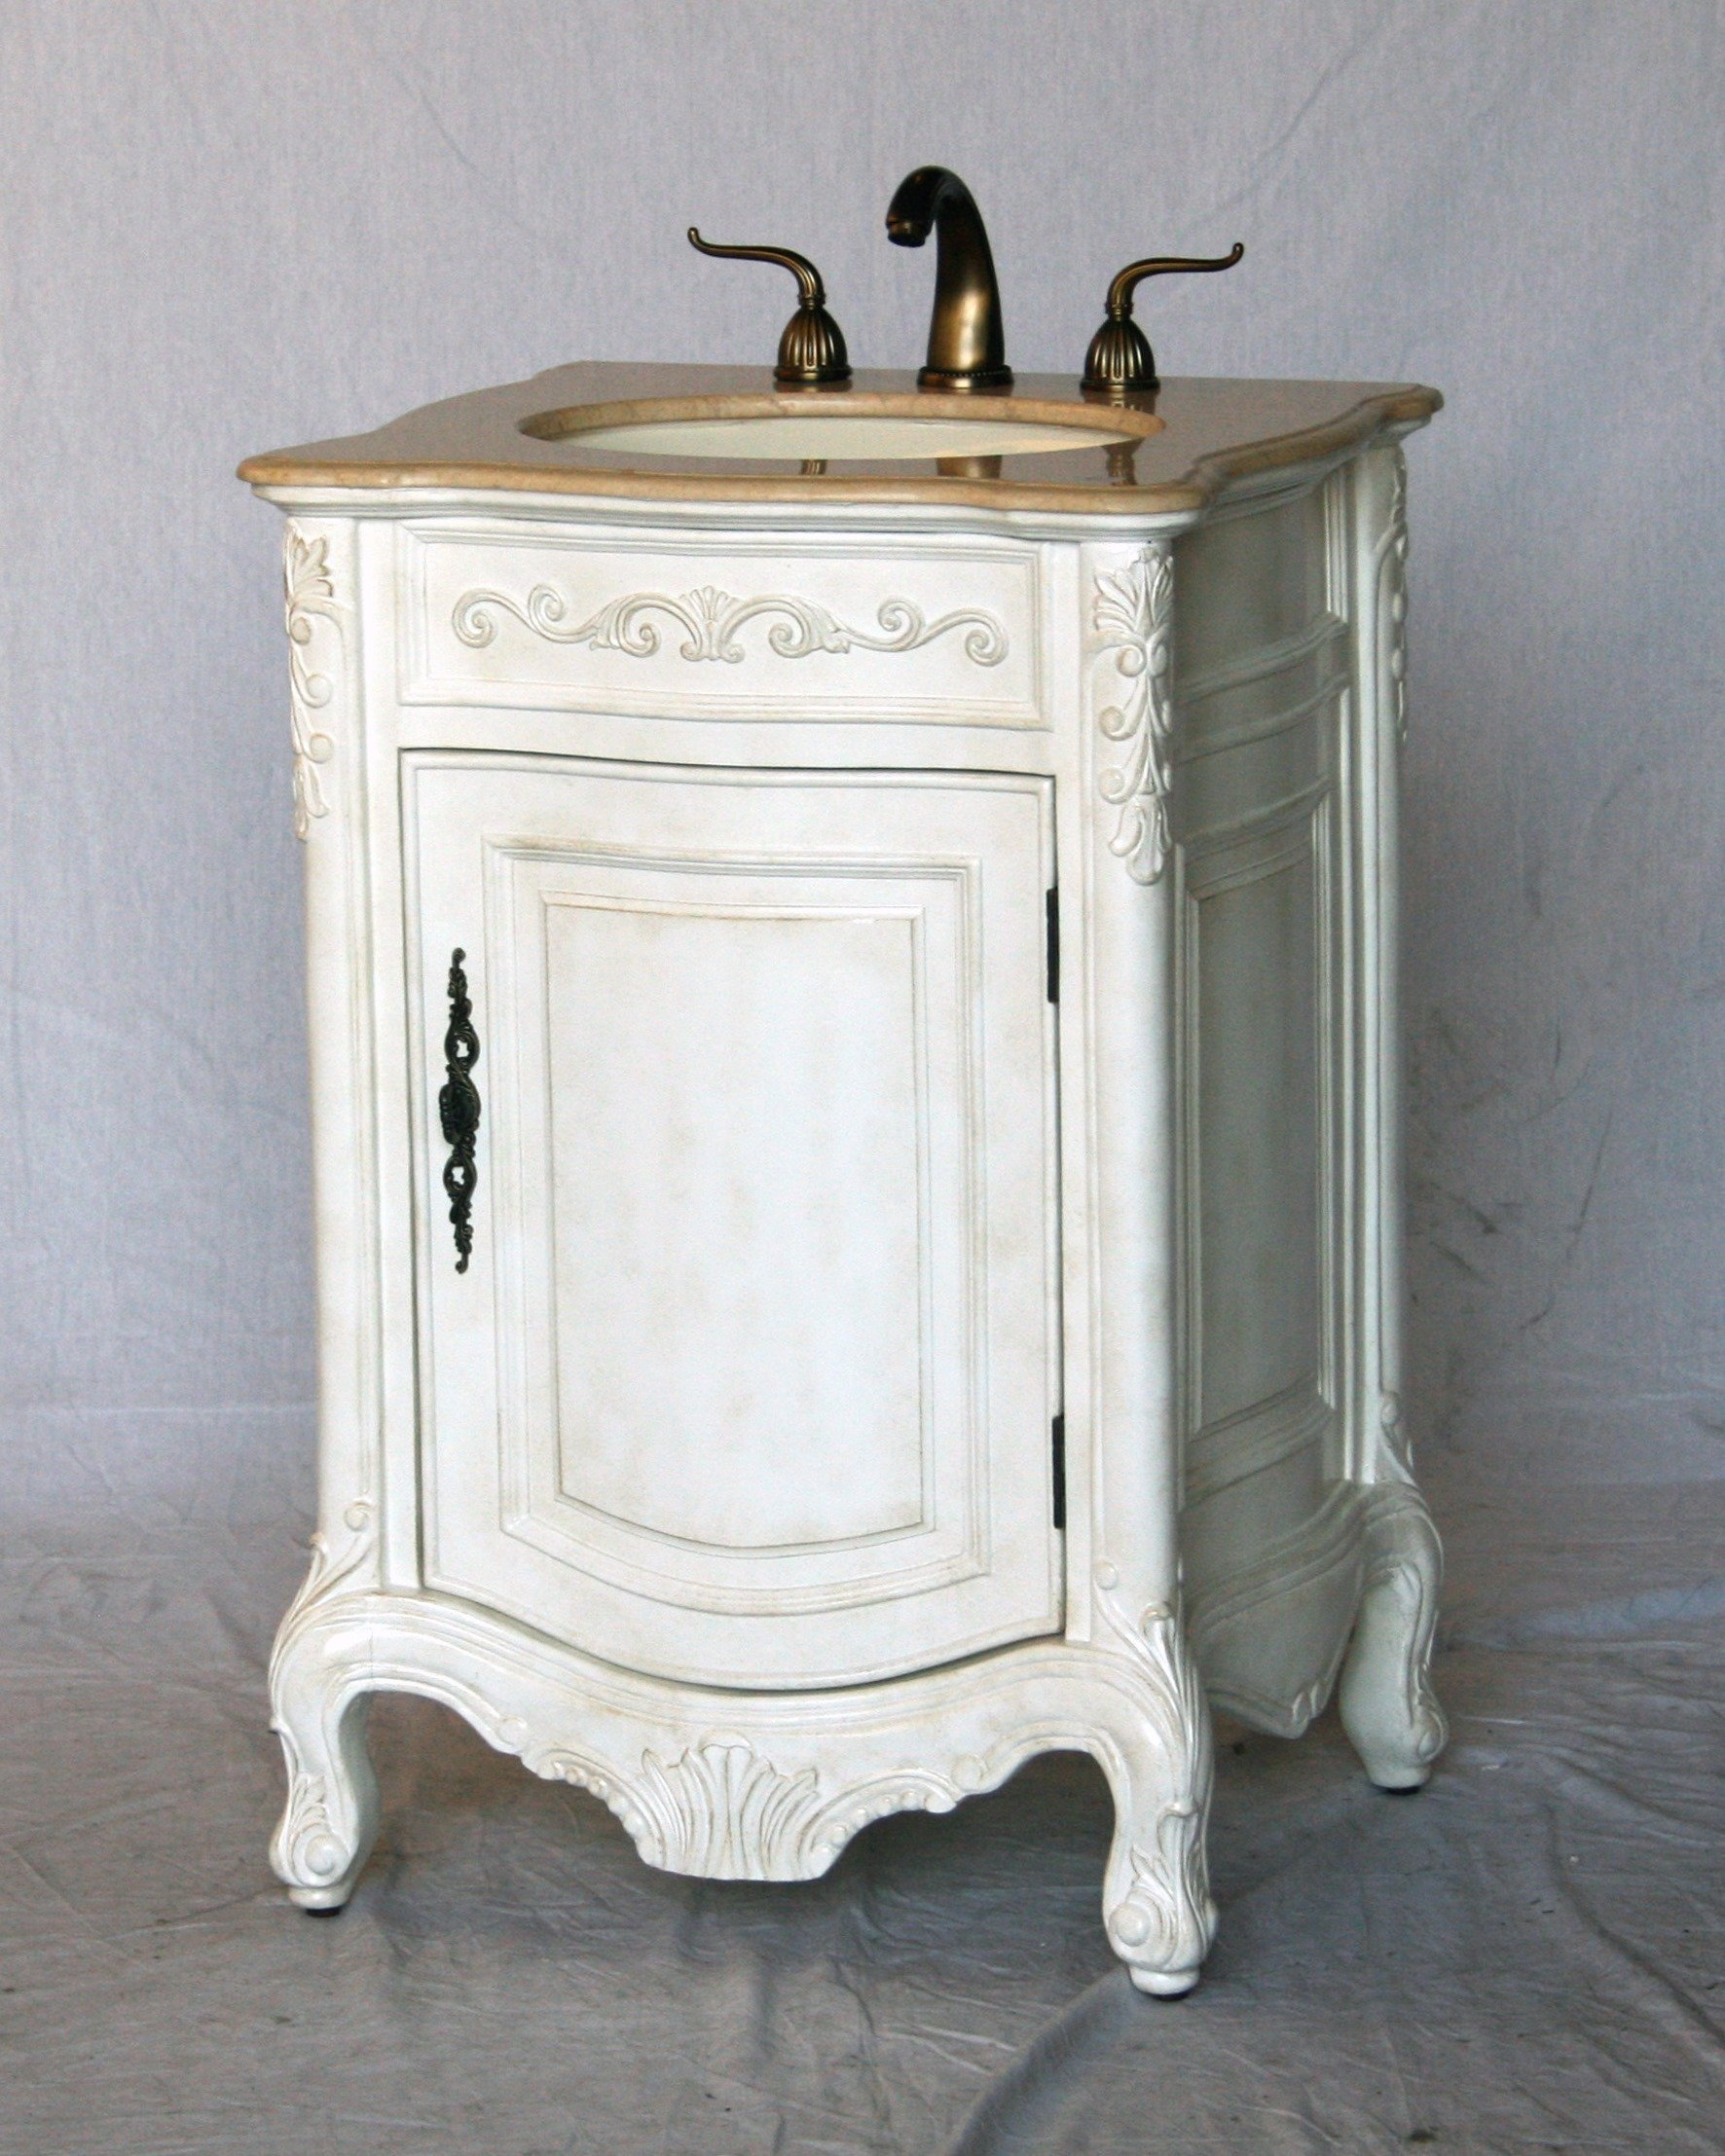 24 Inch Antique Style Single Sink Bathroom Vanity Model